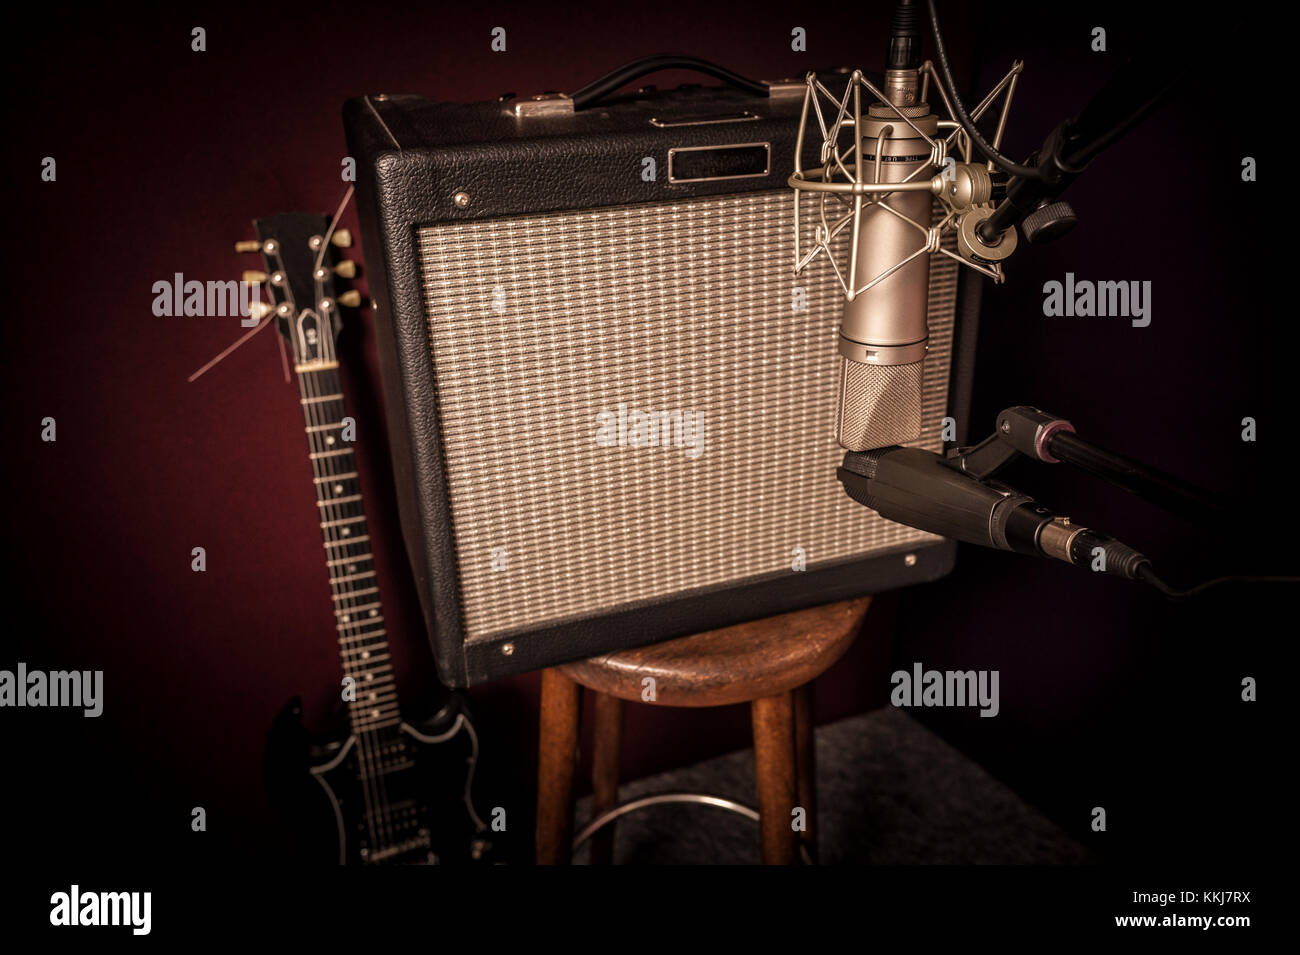 recording room stock photos recording room stock images alamy. Black Bedroom Furniture Sets. Home Design Ideas